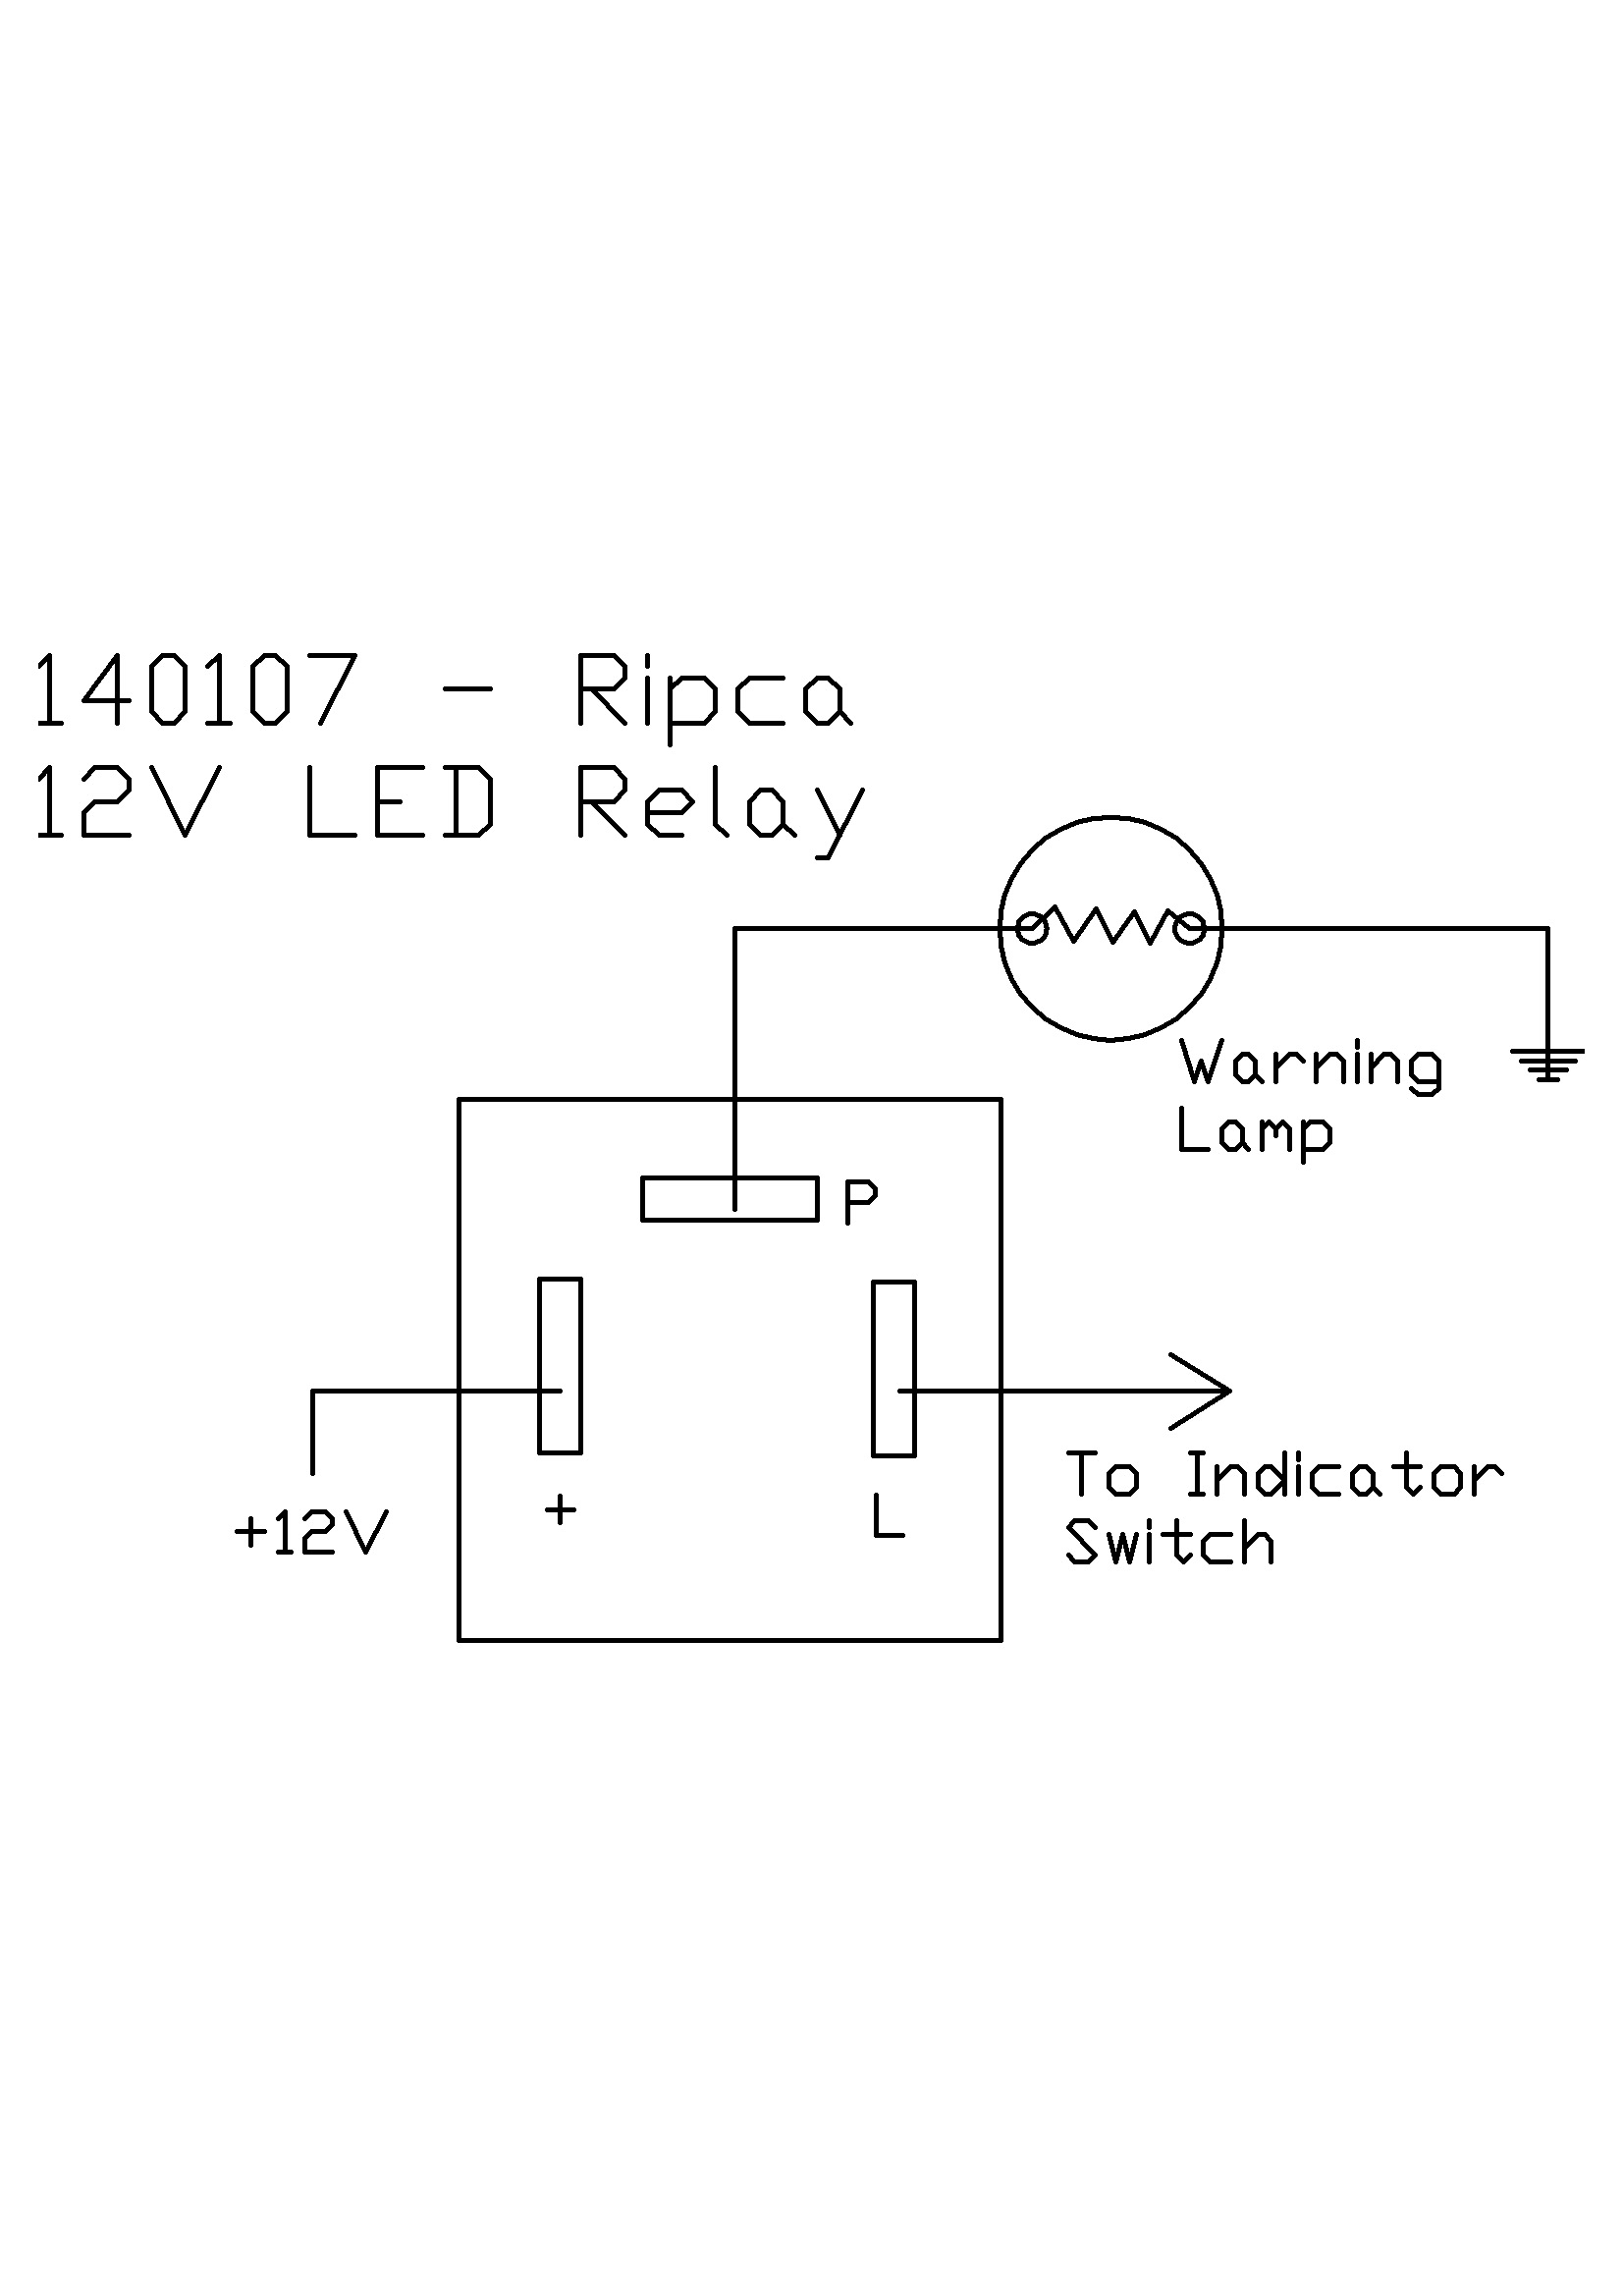 140107 ripca 12 volt led flasher unit flasher unit wiring diagram at edmiracle.co